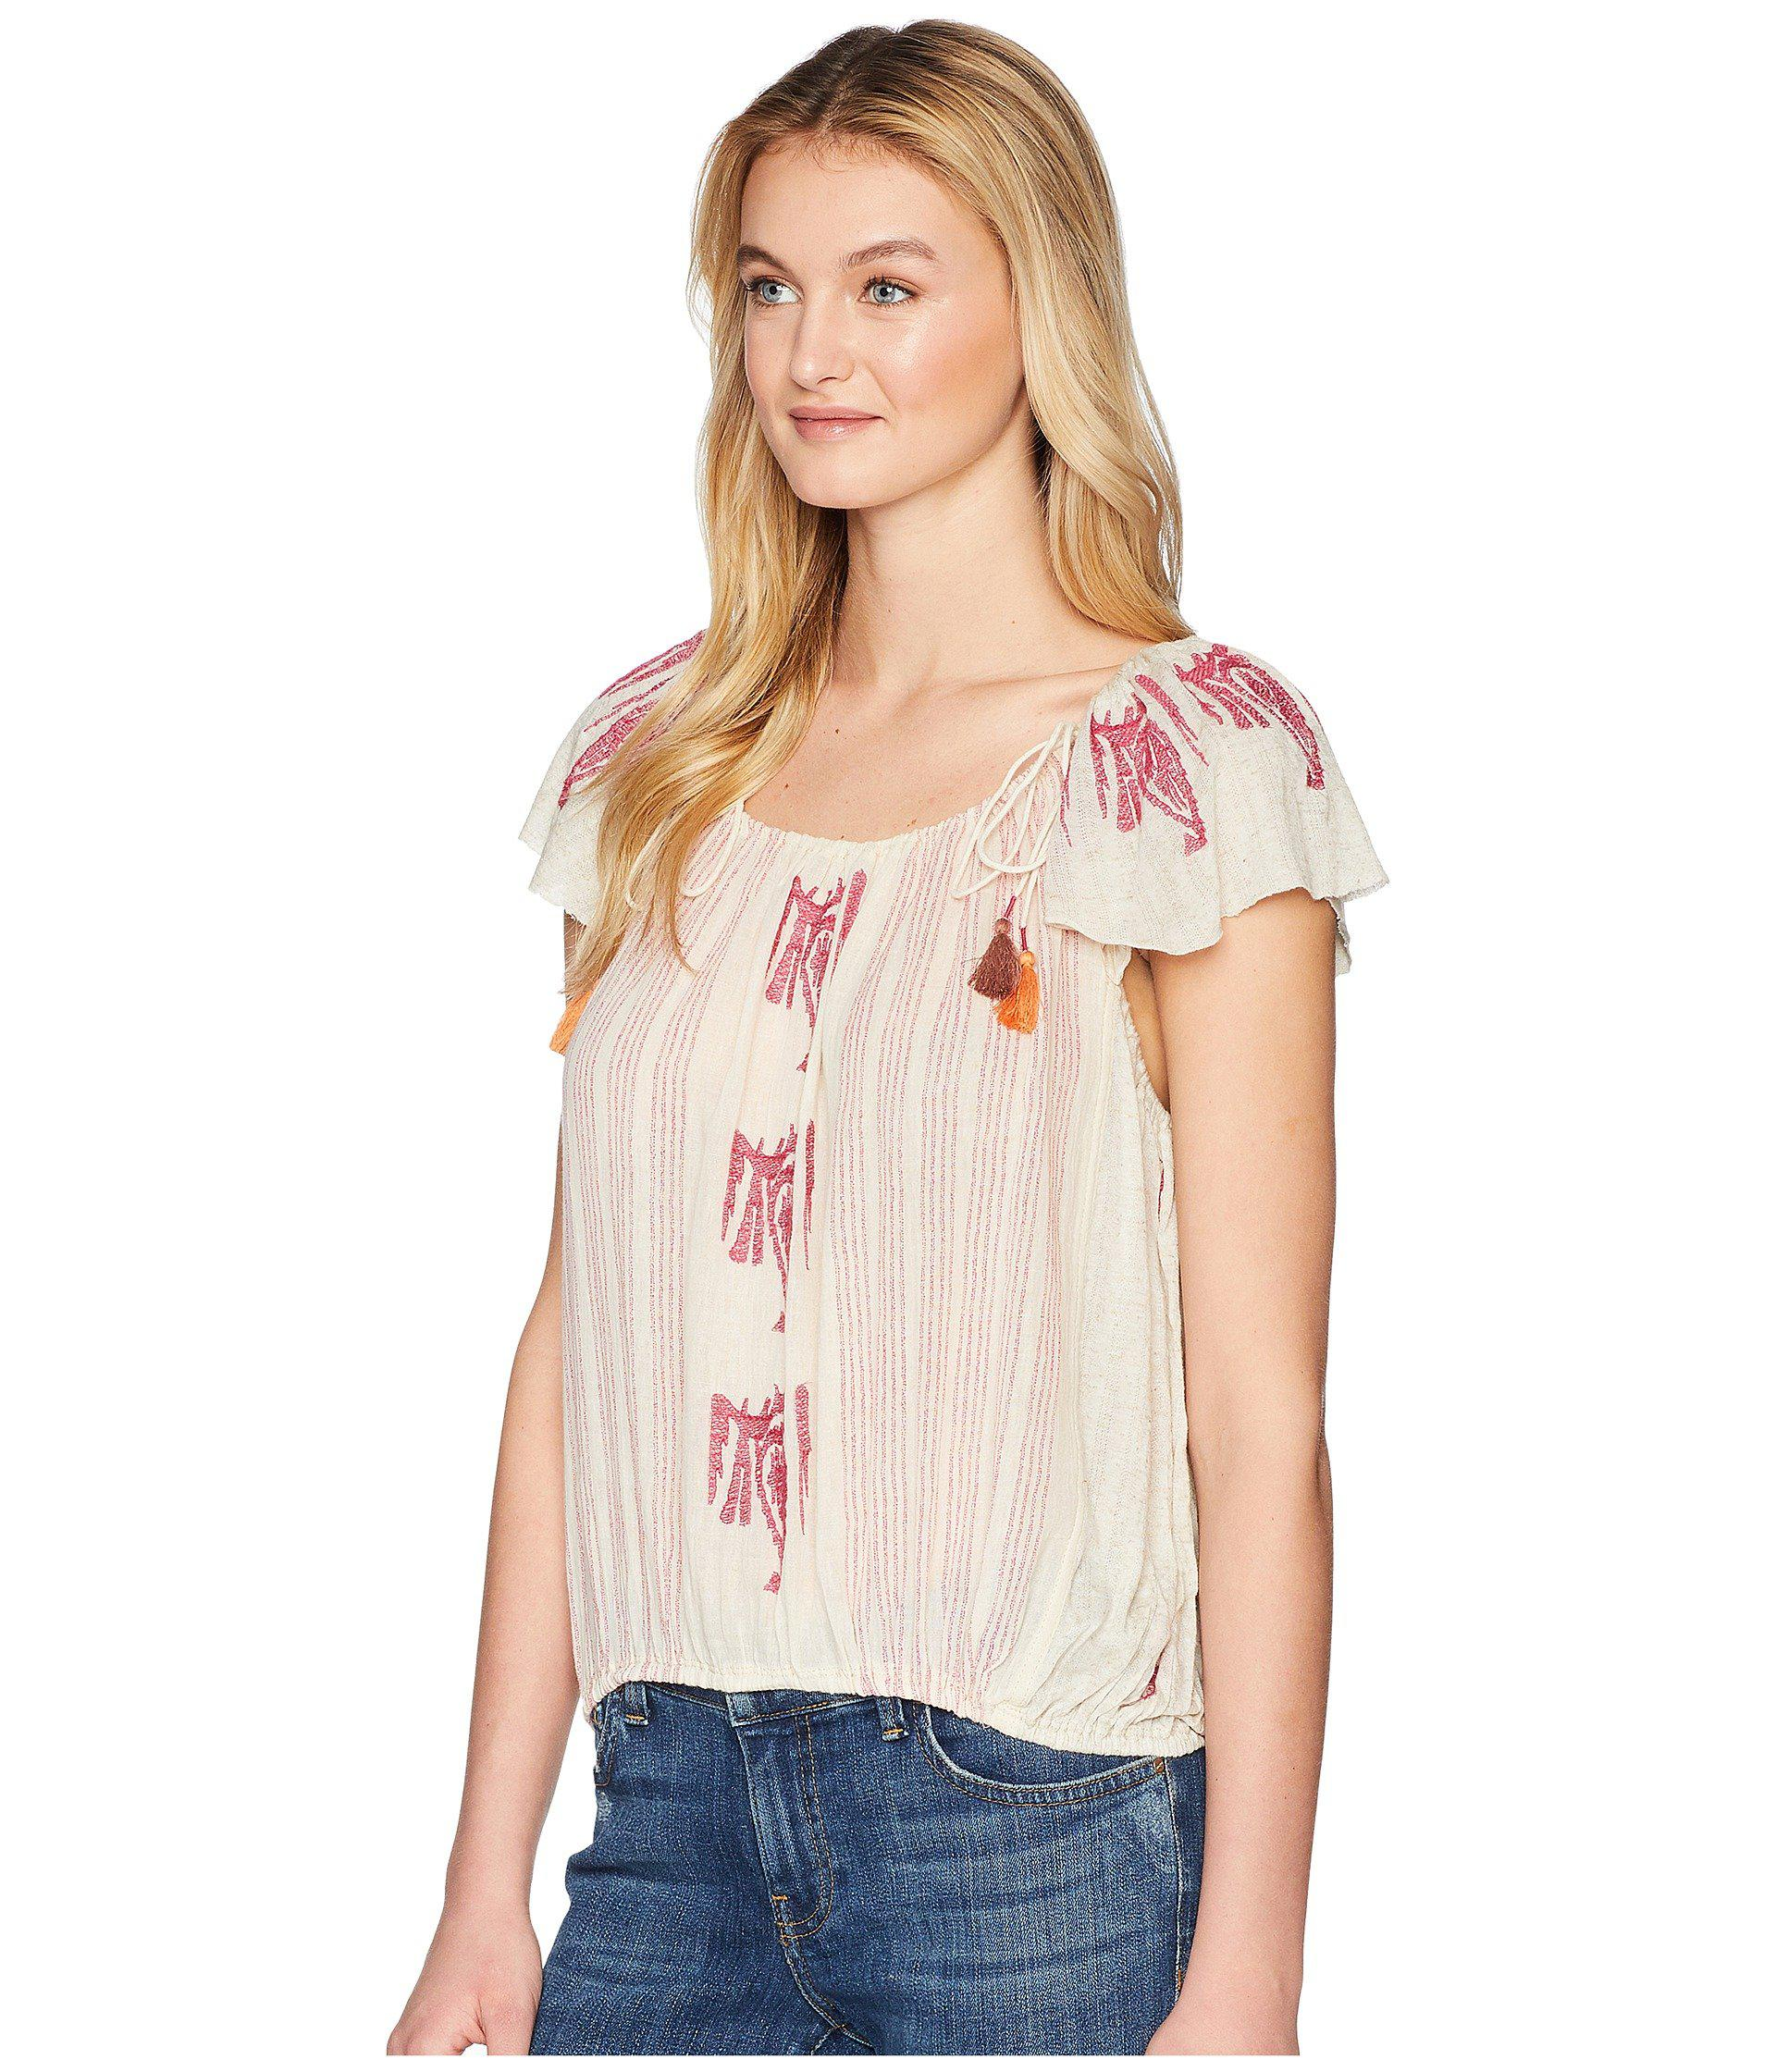 235c92d690871 Lyst - Free People Pukka Tee in Natural - Save 20%